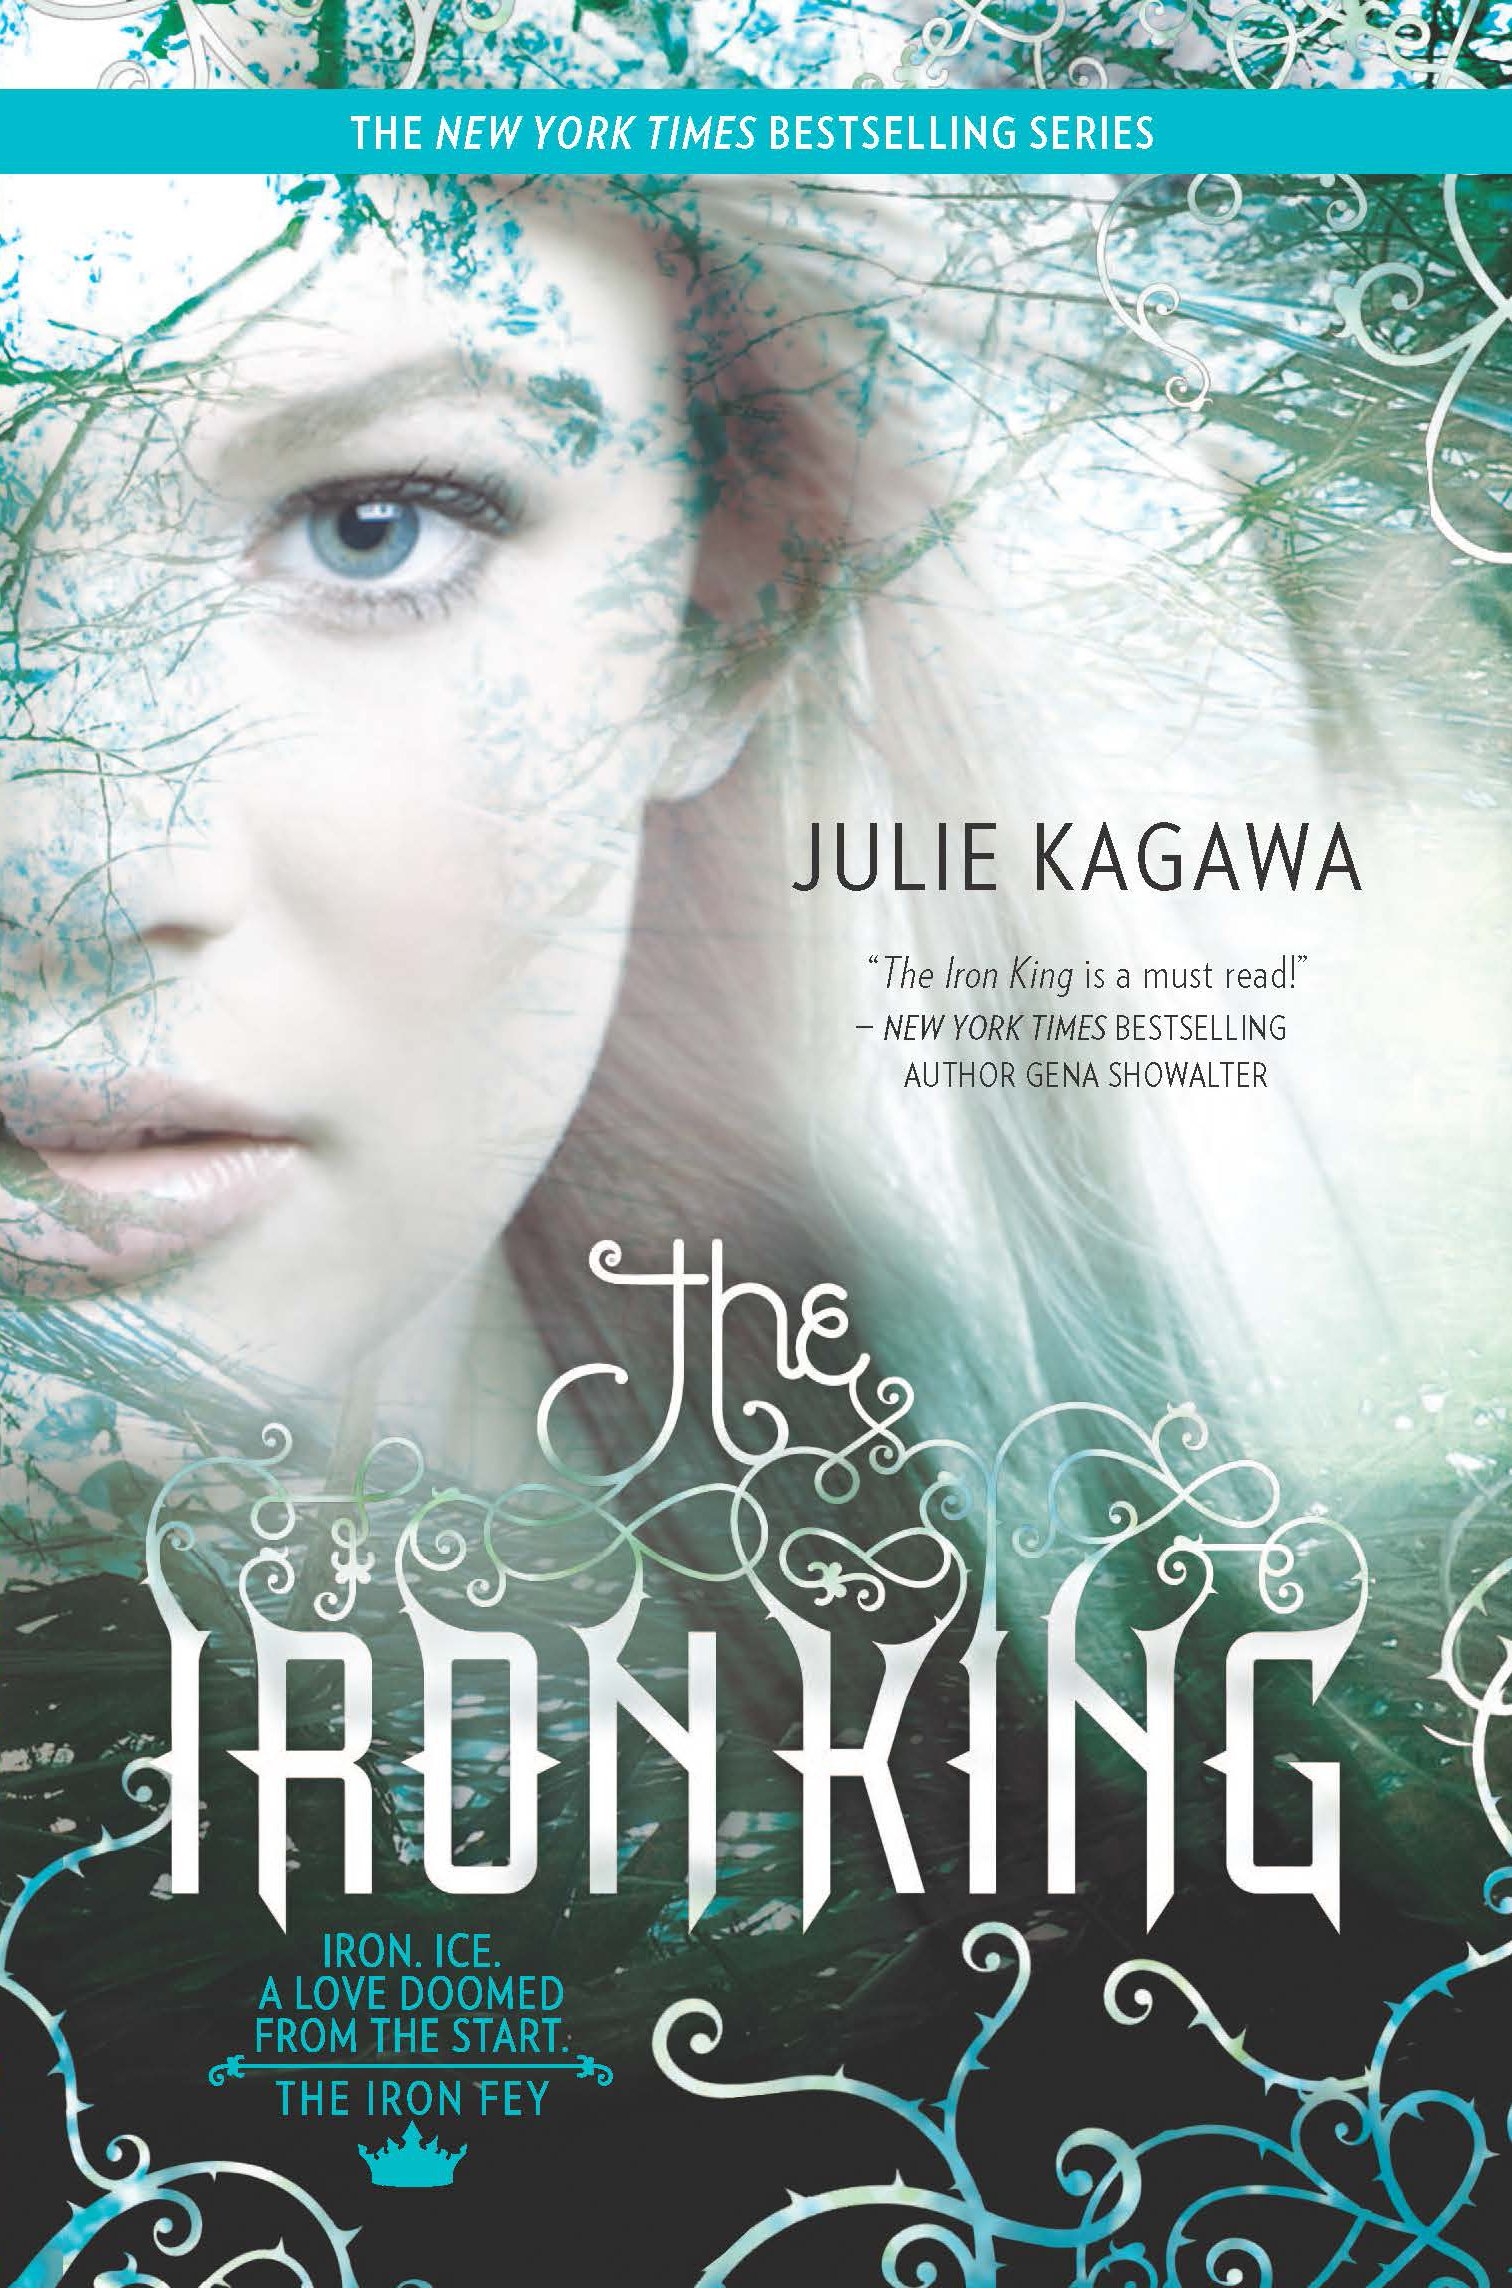 The Iron King (The Iron Fey): Amazon.es: Julie Kagawa: Libros en idiomas extranjeros